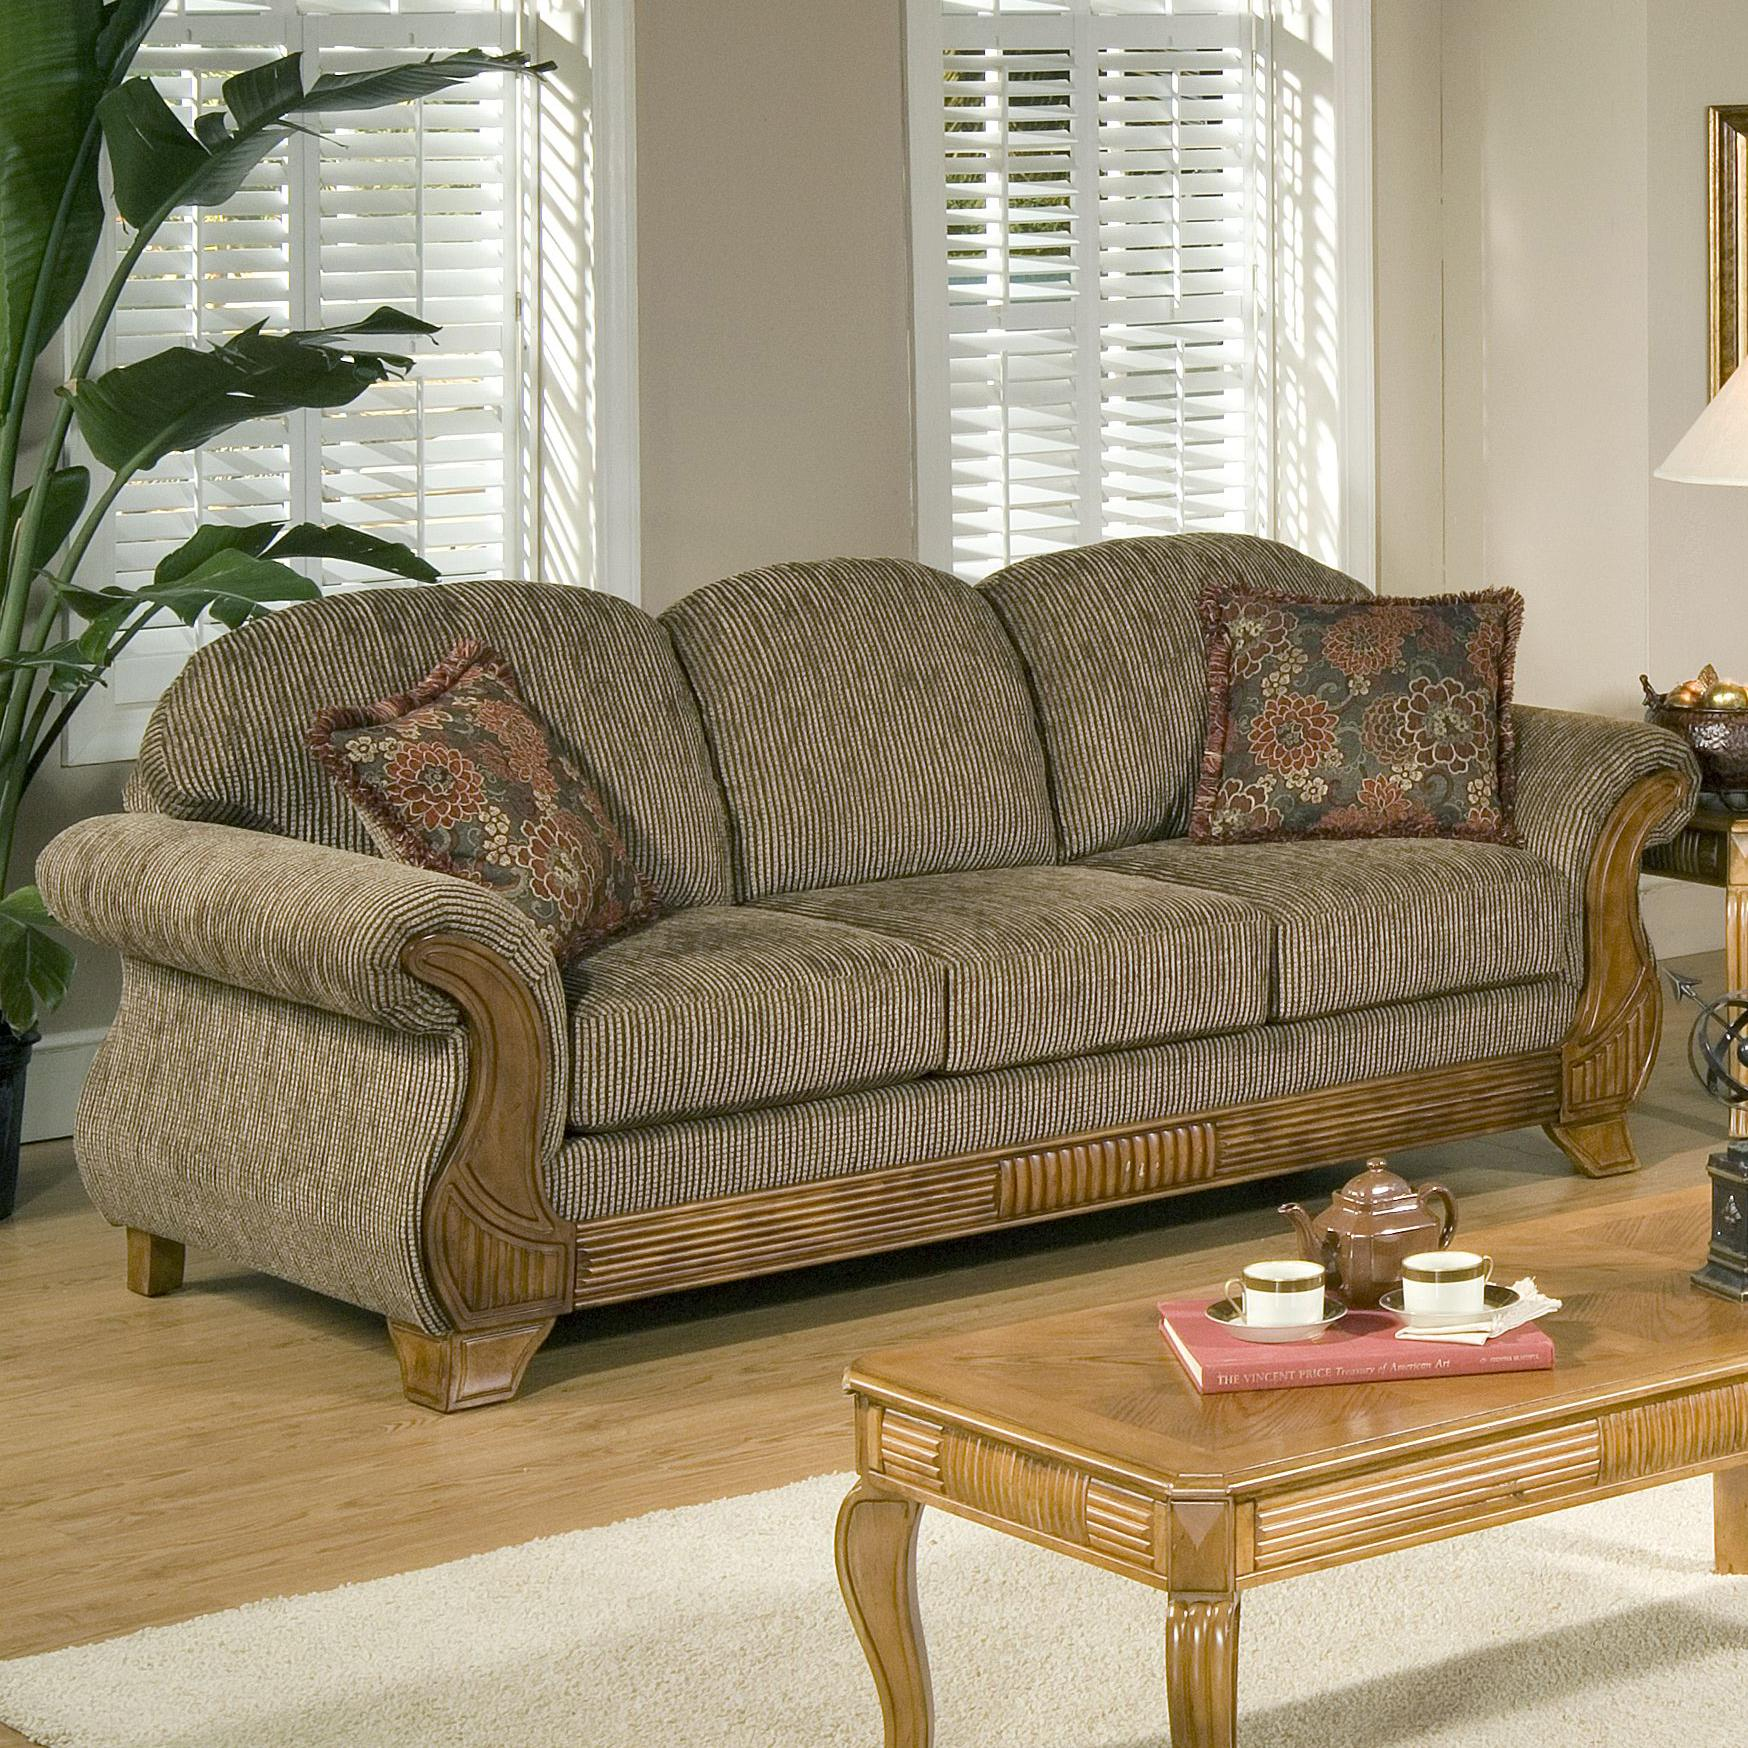 Serta Upholstery 7400  Sofa - Item Number: 7400NFRS